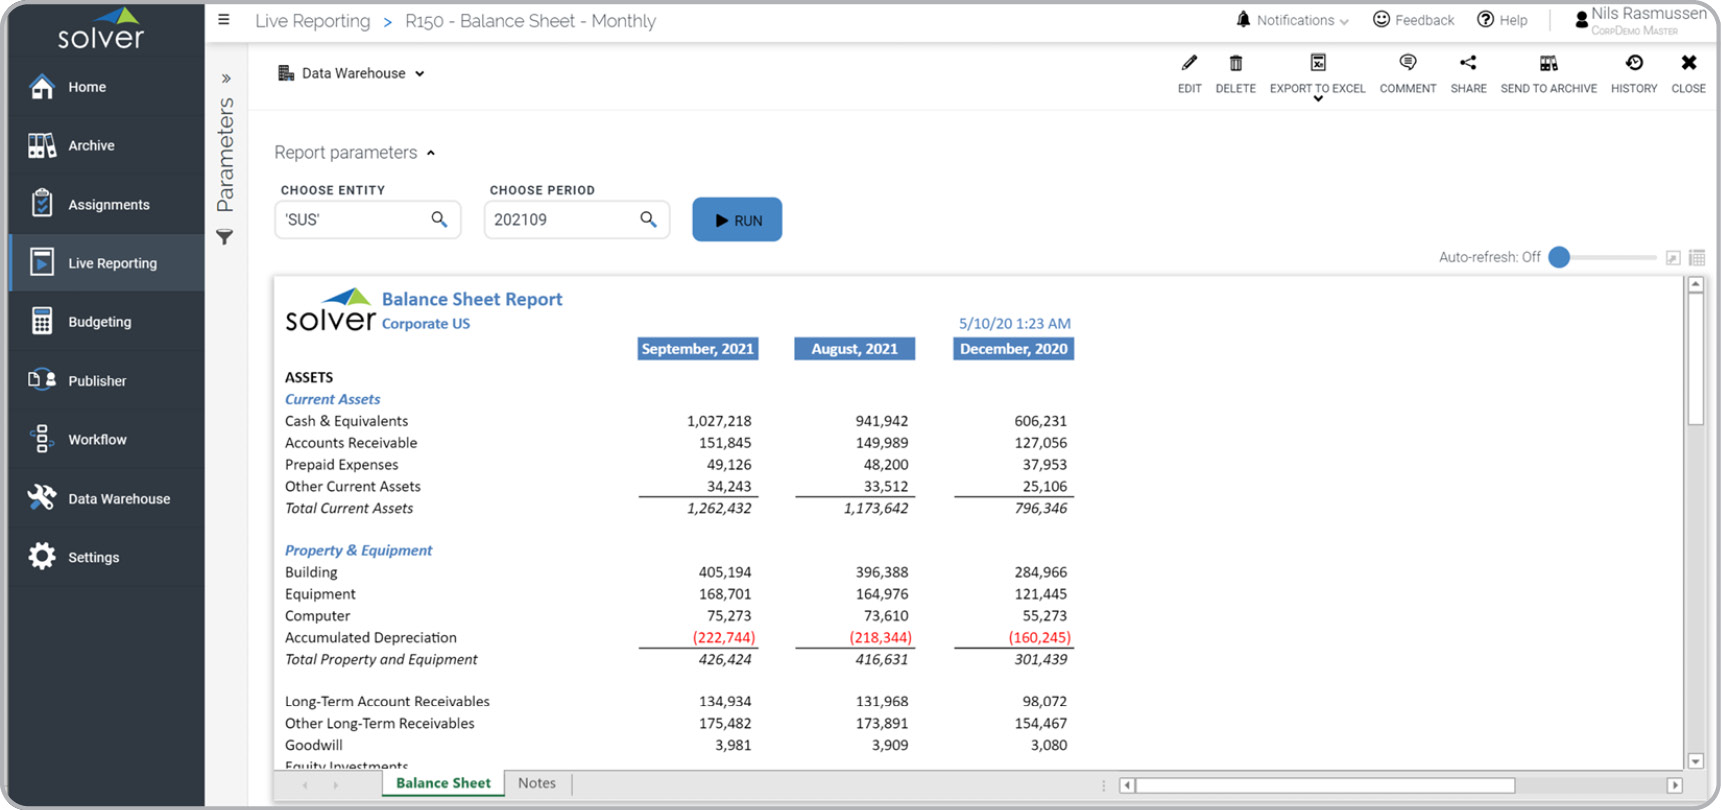 Balance Sheet – Monthly